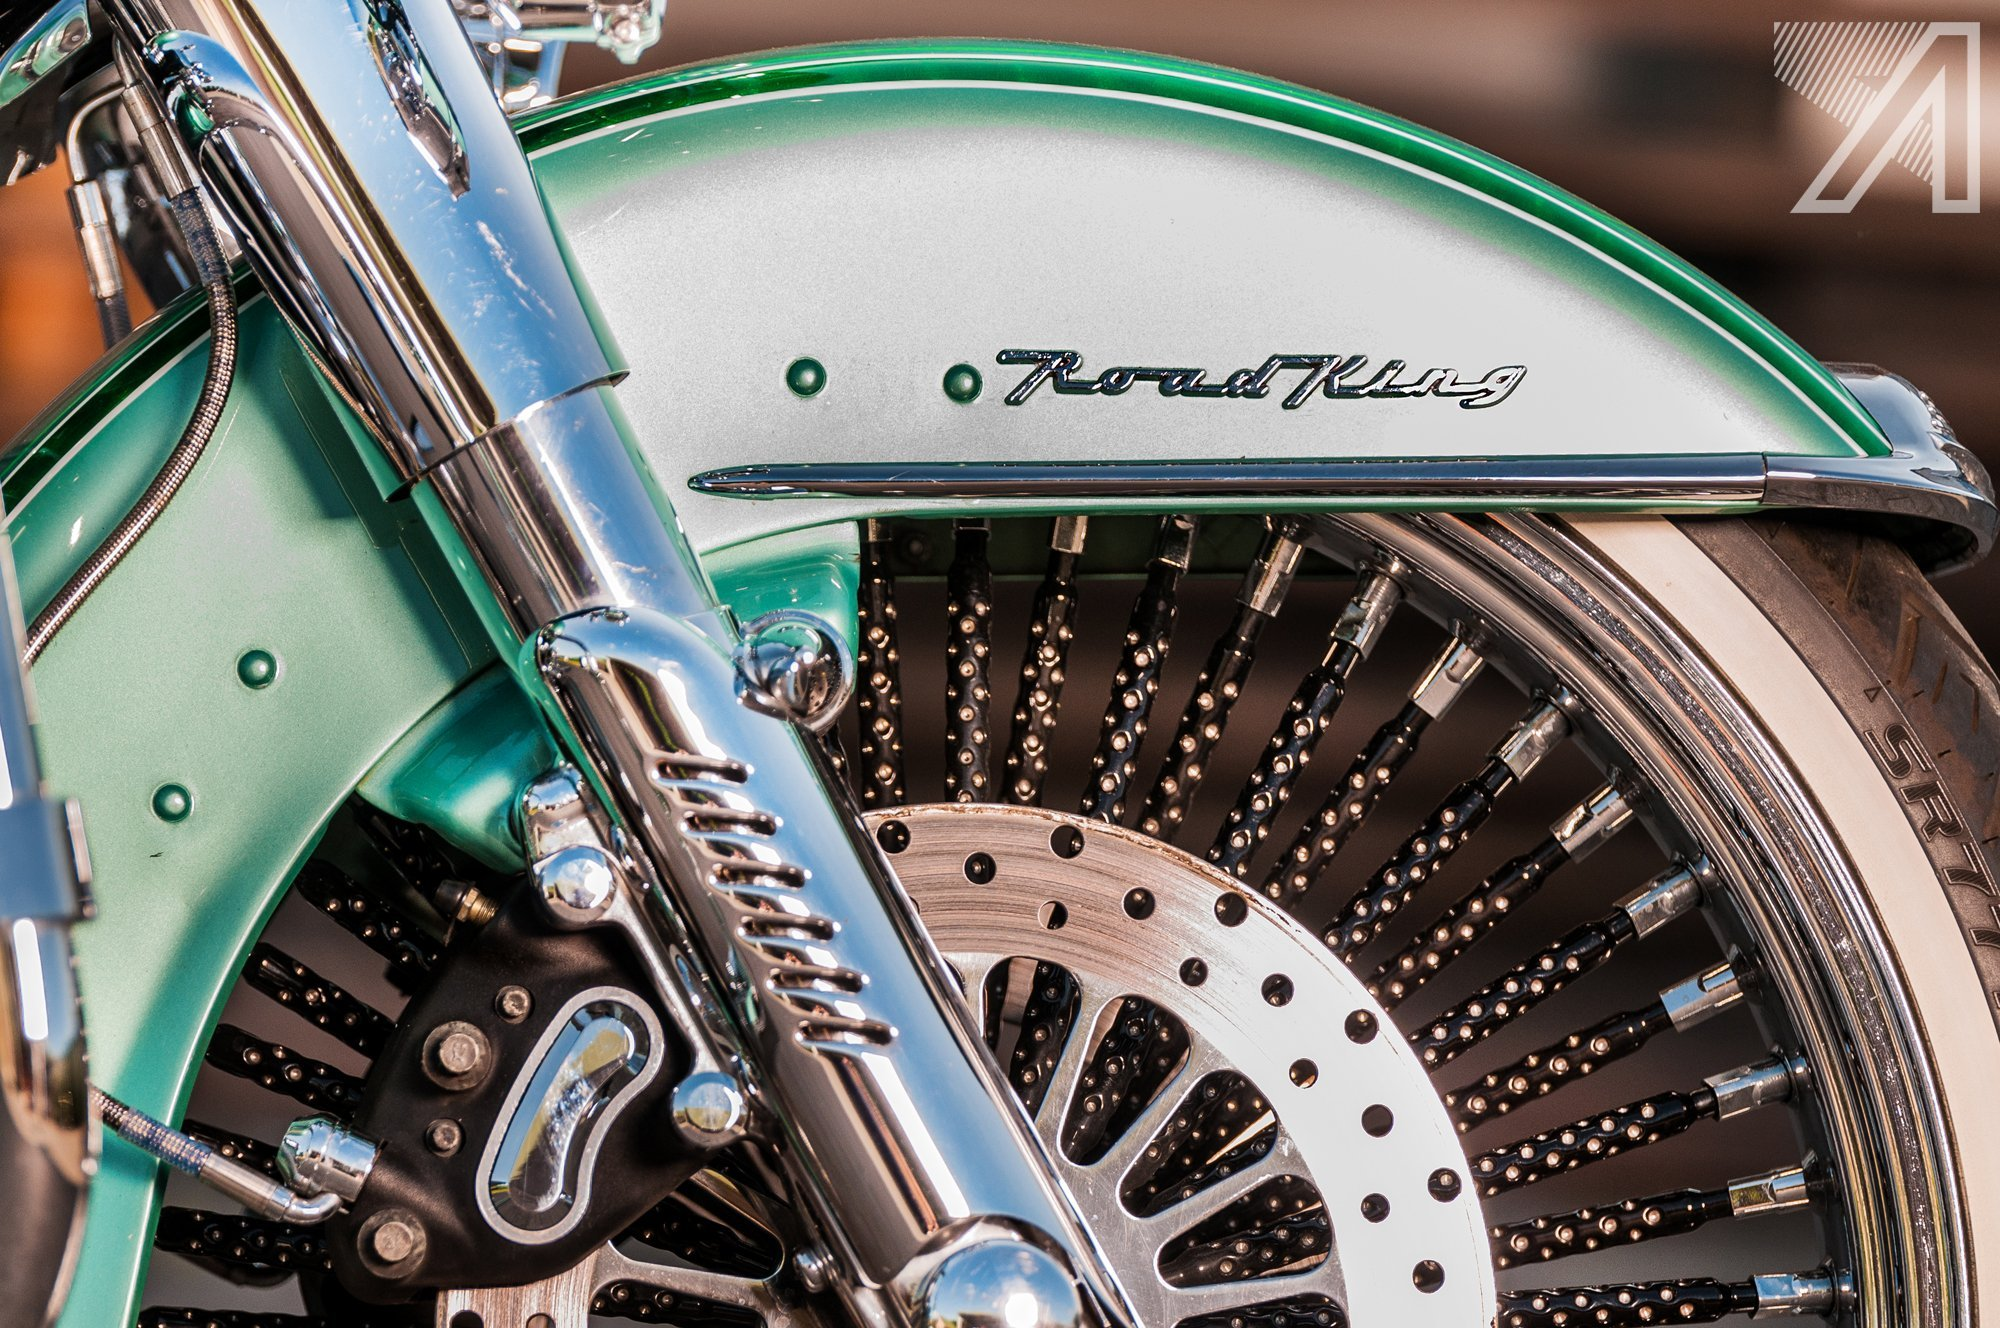 2016-10::1476001612-h-d-road-king-green-candy-leaf-4.jpg